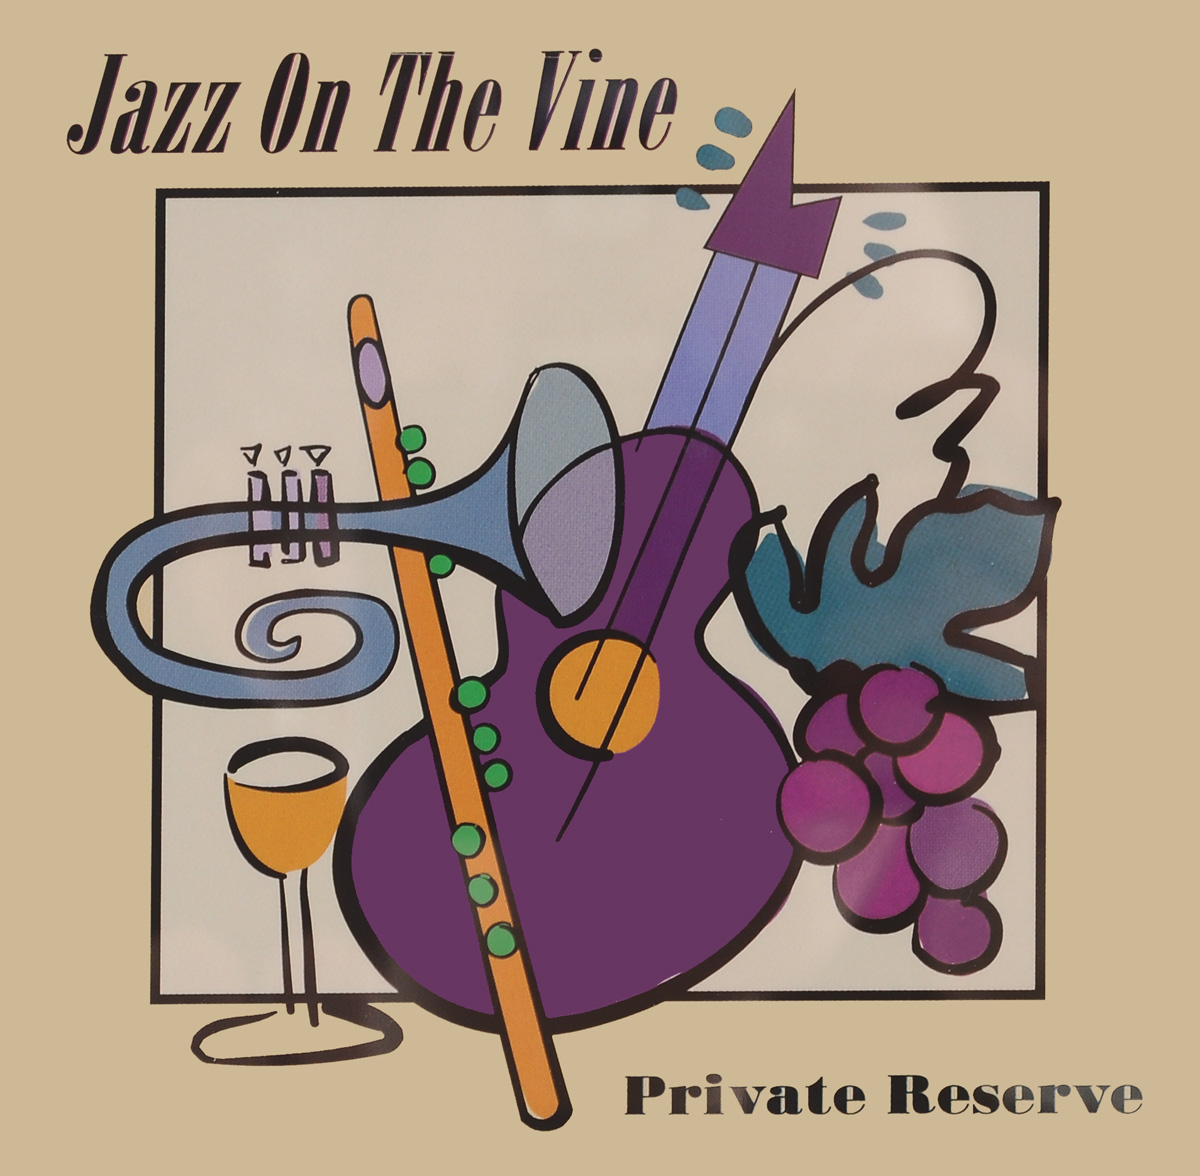 Jazz On The Vine Private Reserve